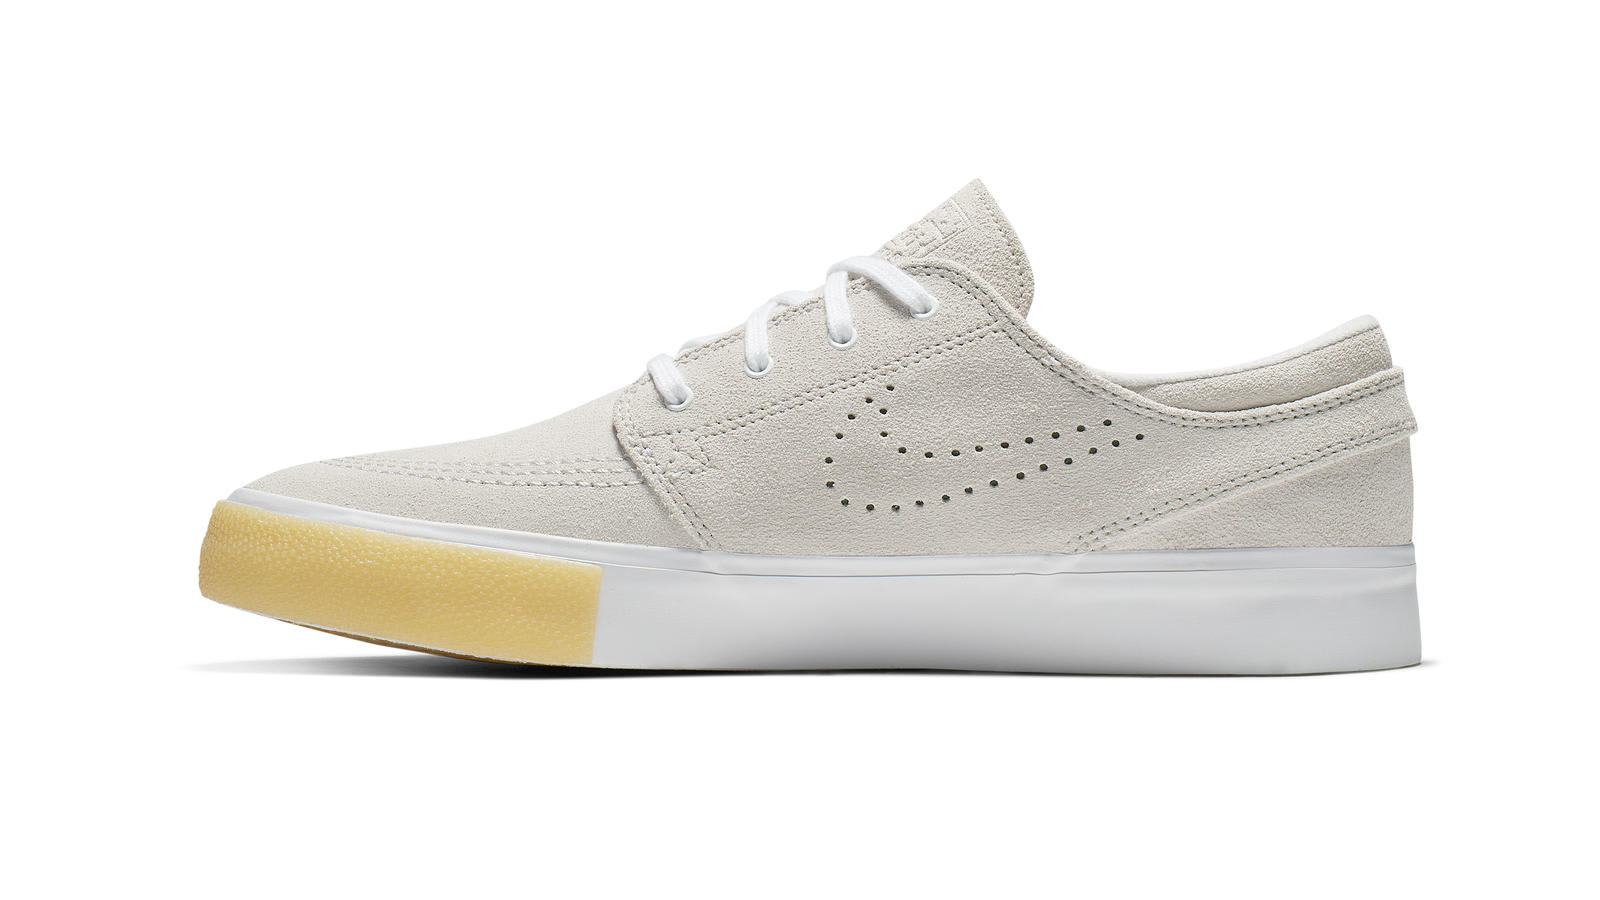 70a206bc495d Nike SB Zoom Stefan Janoski Remastered (RM) Collection Release Date ...